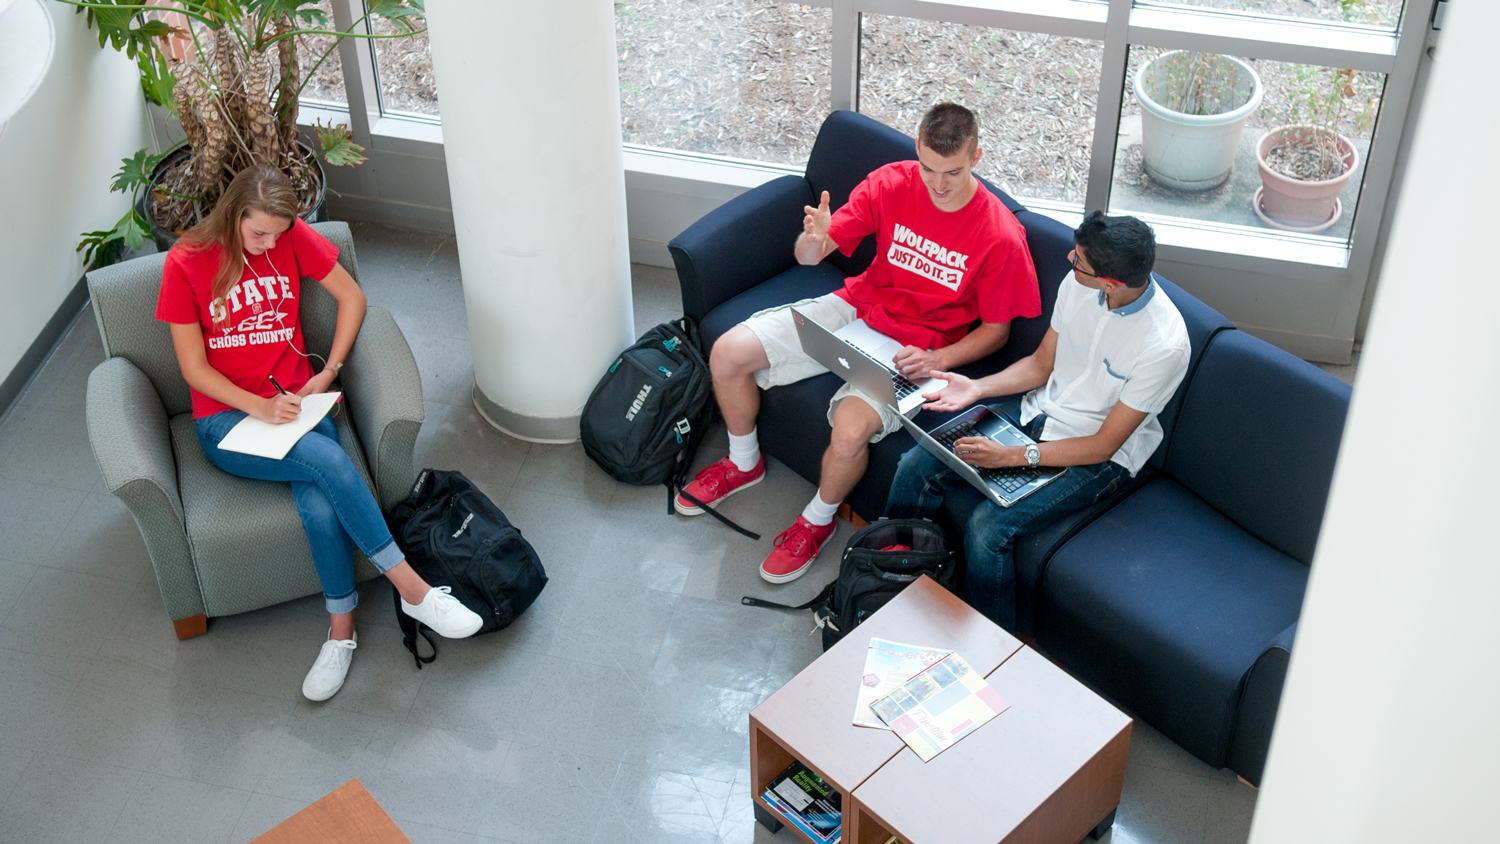 Students in the lounge - Admissions - College of Natural Resources at NCState University